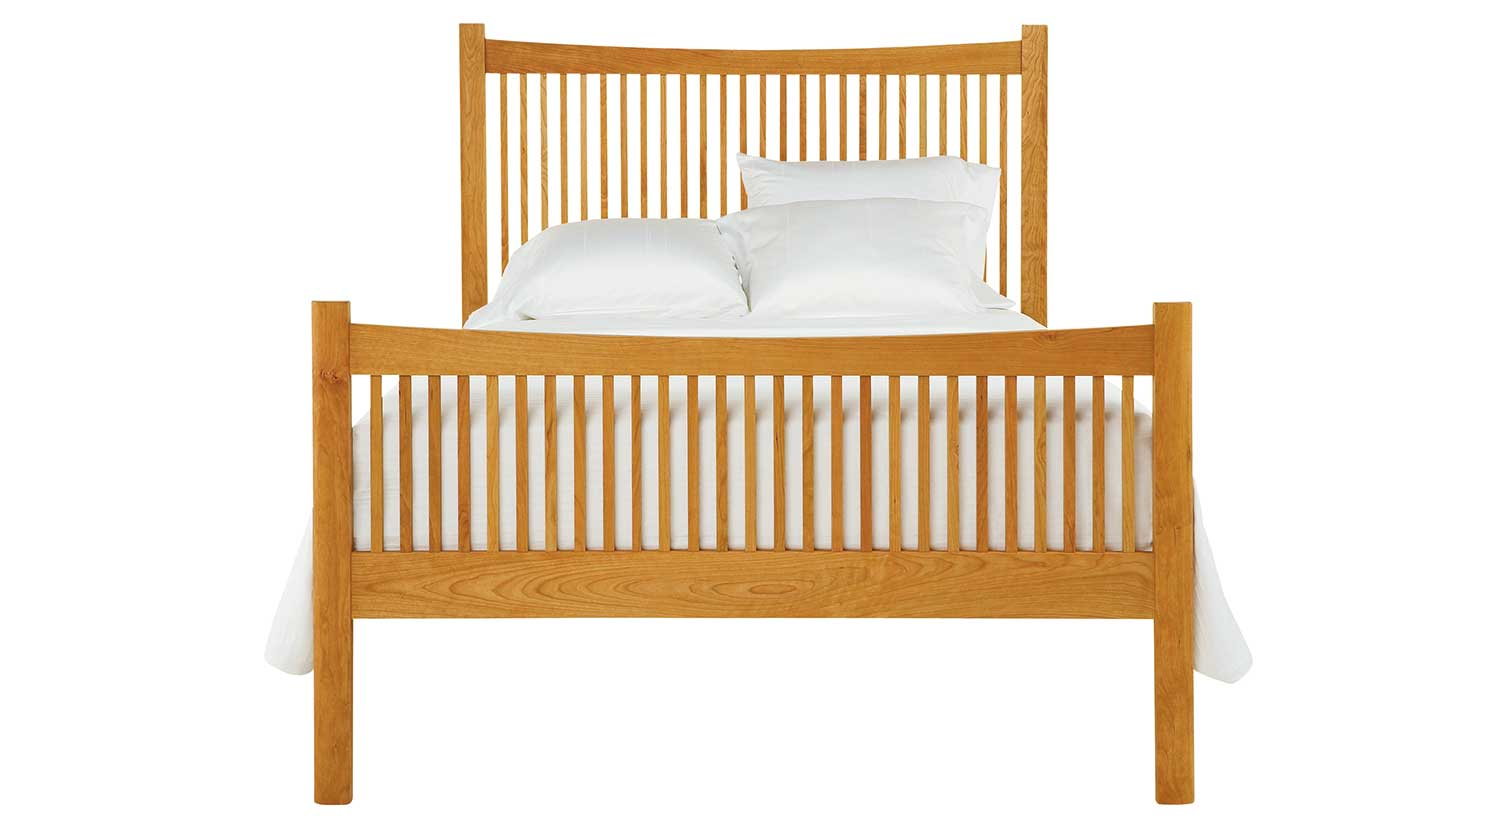 Circle Furniture Heartwood Bed Quality Bedroom Furniture Boston